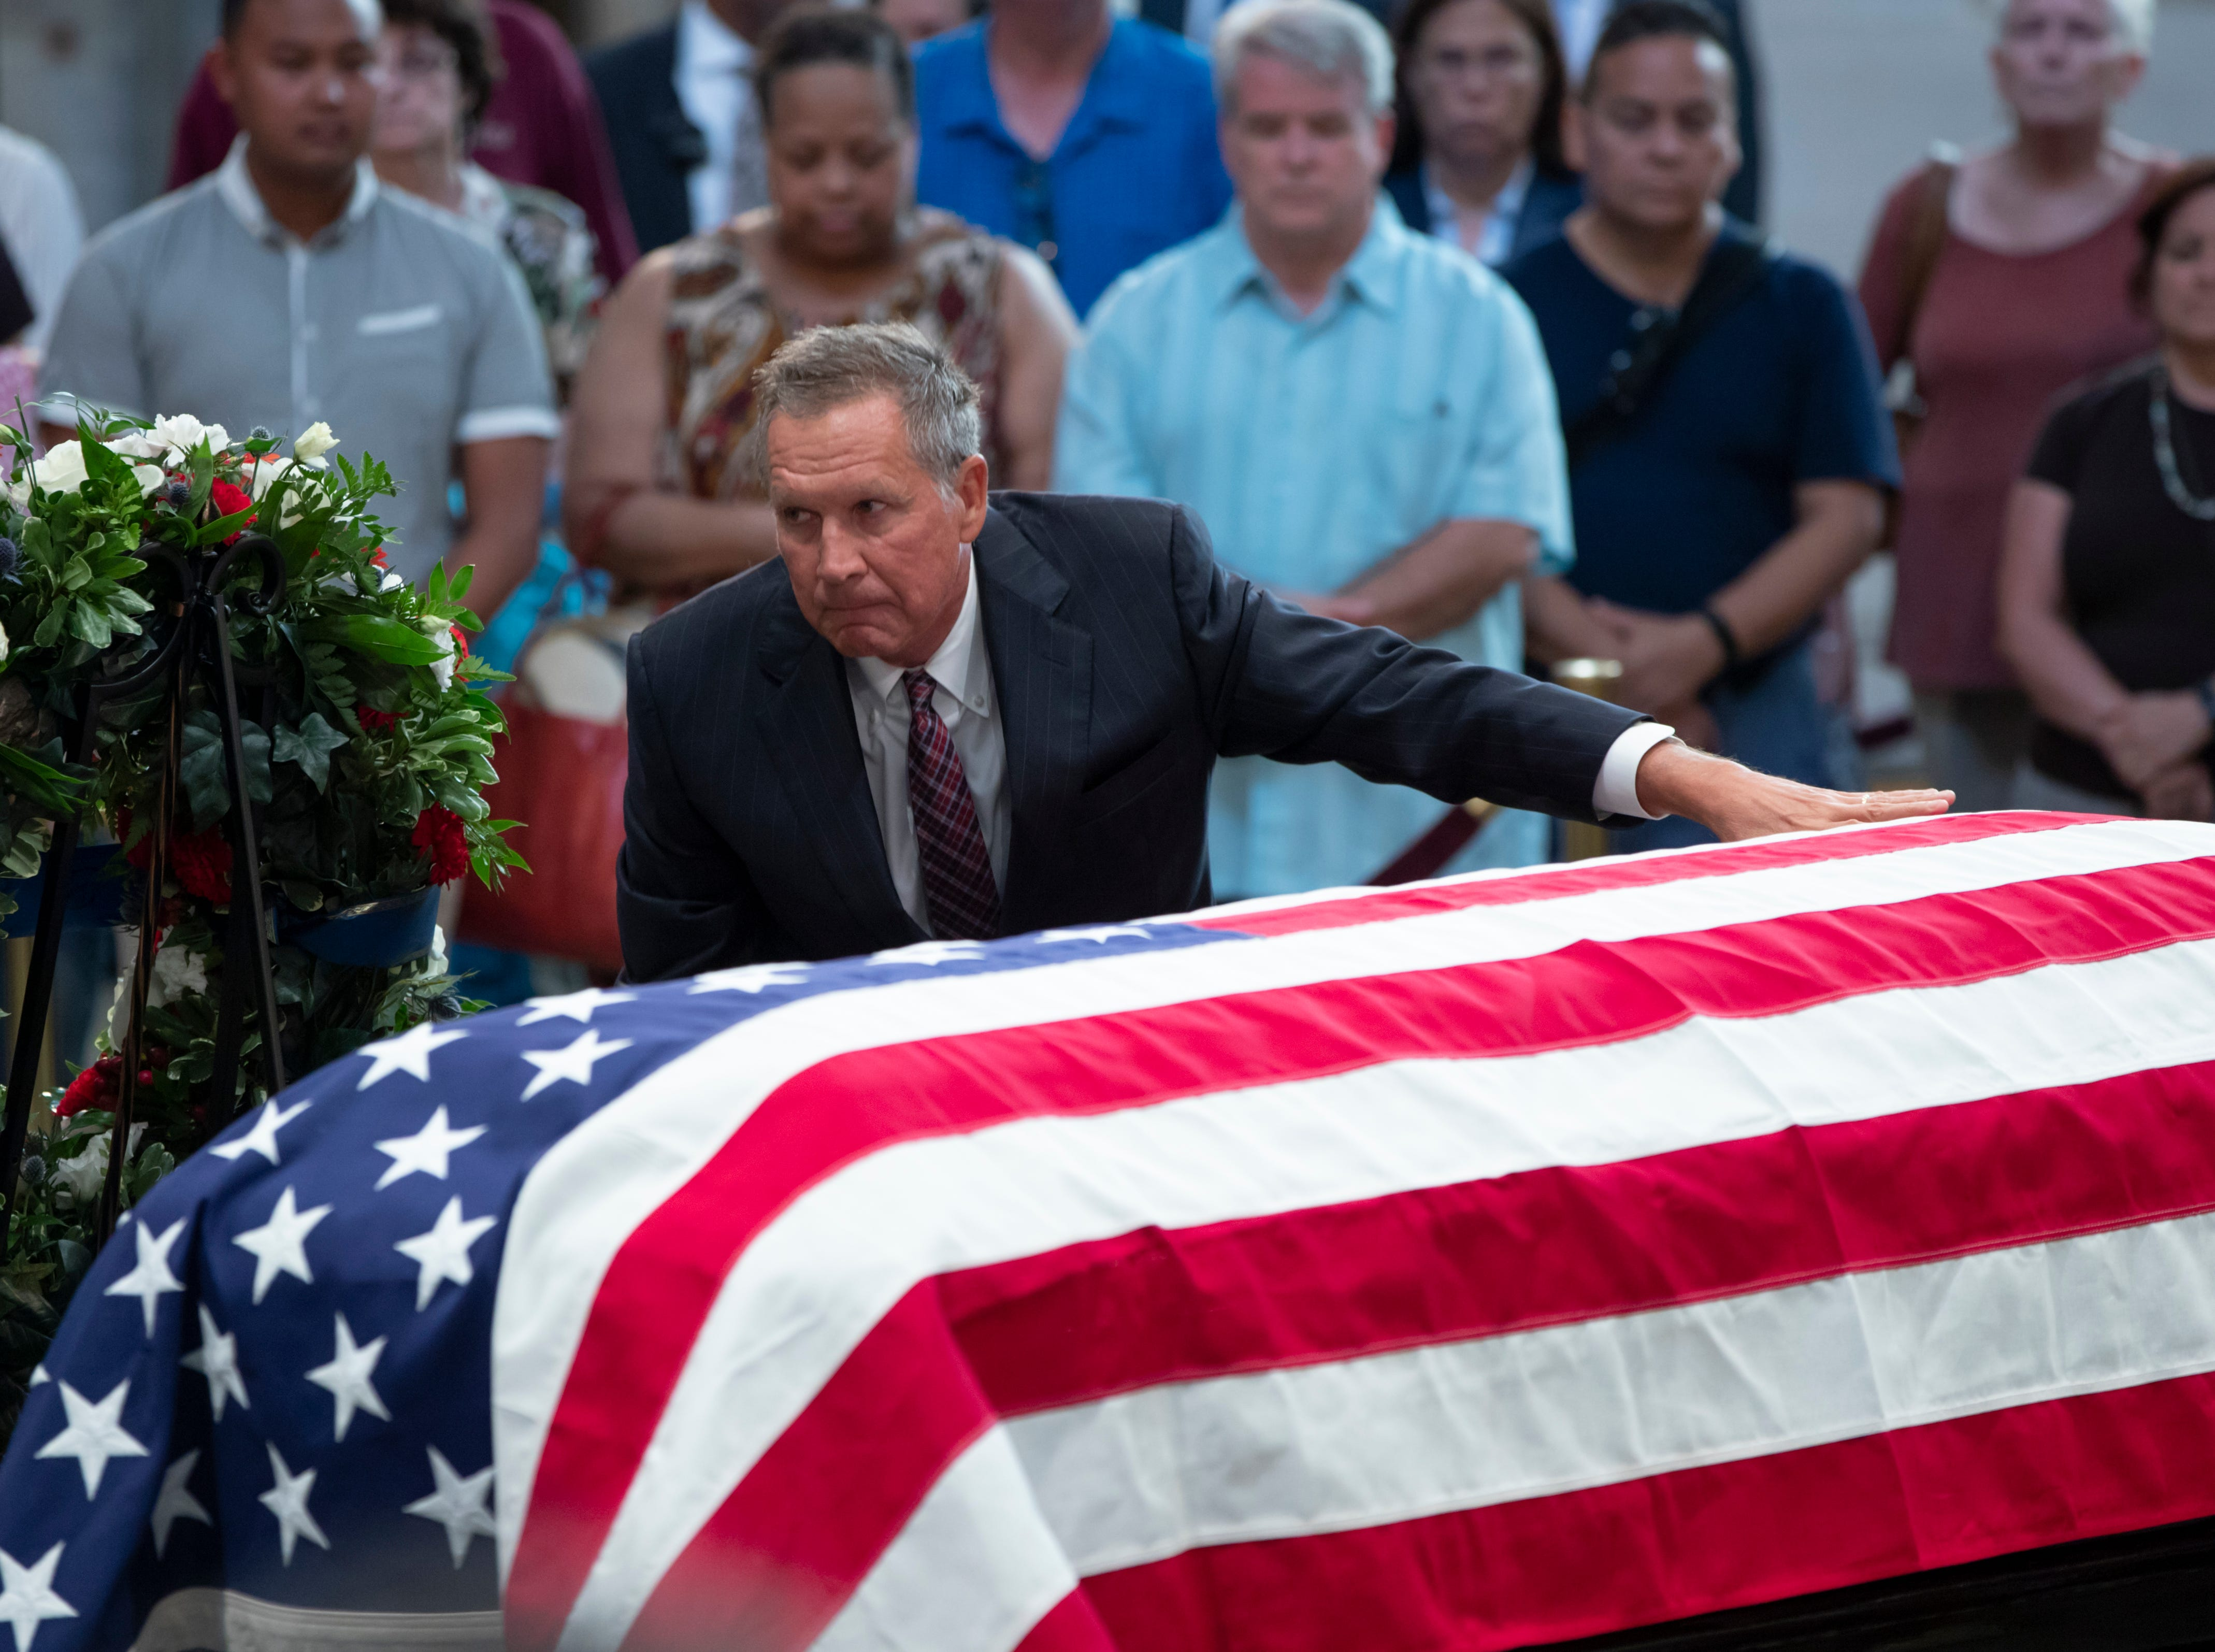 Ohio Gov. John Kasich kneels at the flag-draped casket of Sen. John McCain of Arizona, who lived and worked in Congress over four decades, in the U.S. Capitol rotunda, Friday, Aug. 31, 2018, in Washington. McCain was a six-term senator, a former Republican nominee for president, and a Navy pilot who served in Vietnam, where he endured five-and-a-half years as a prisoner of war. He died Aug. 25 from brain cancer at age 81. (AP Photo/J. Scott Applewhite)